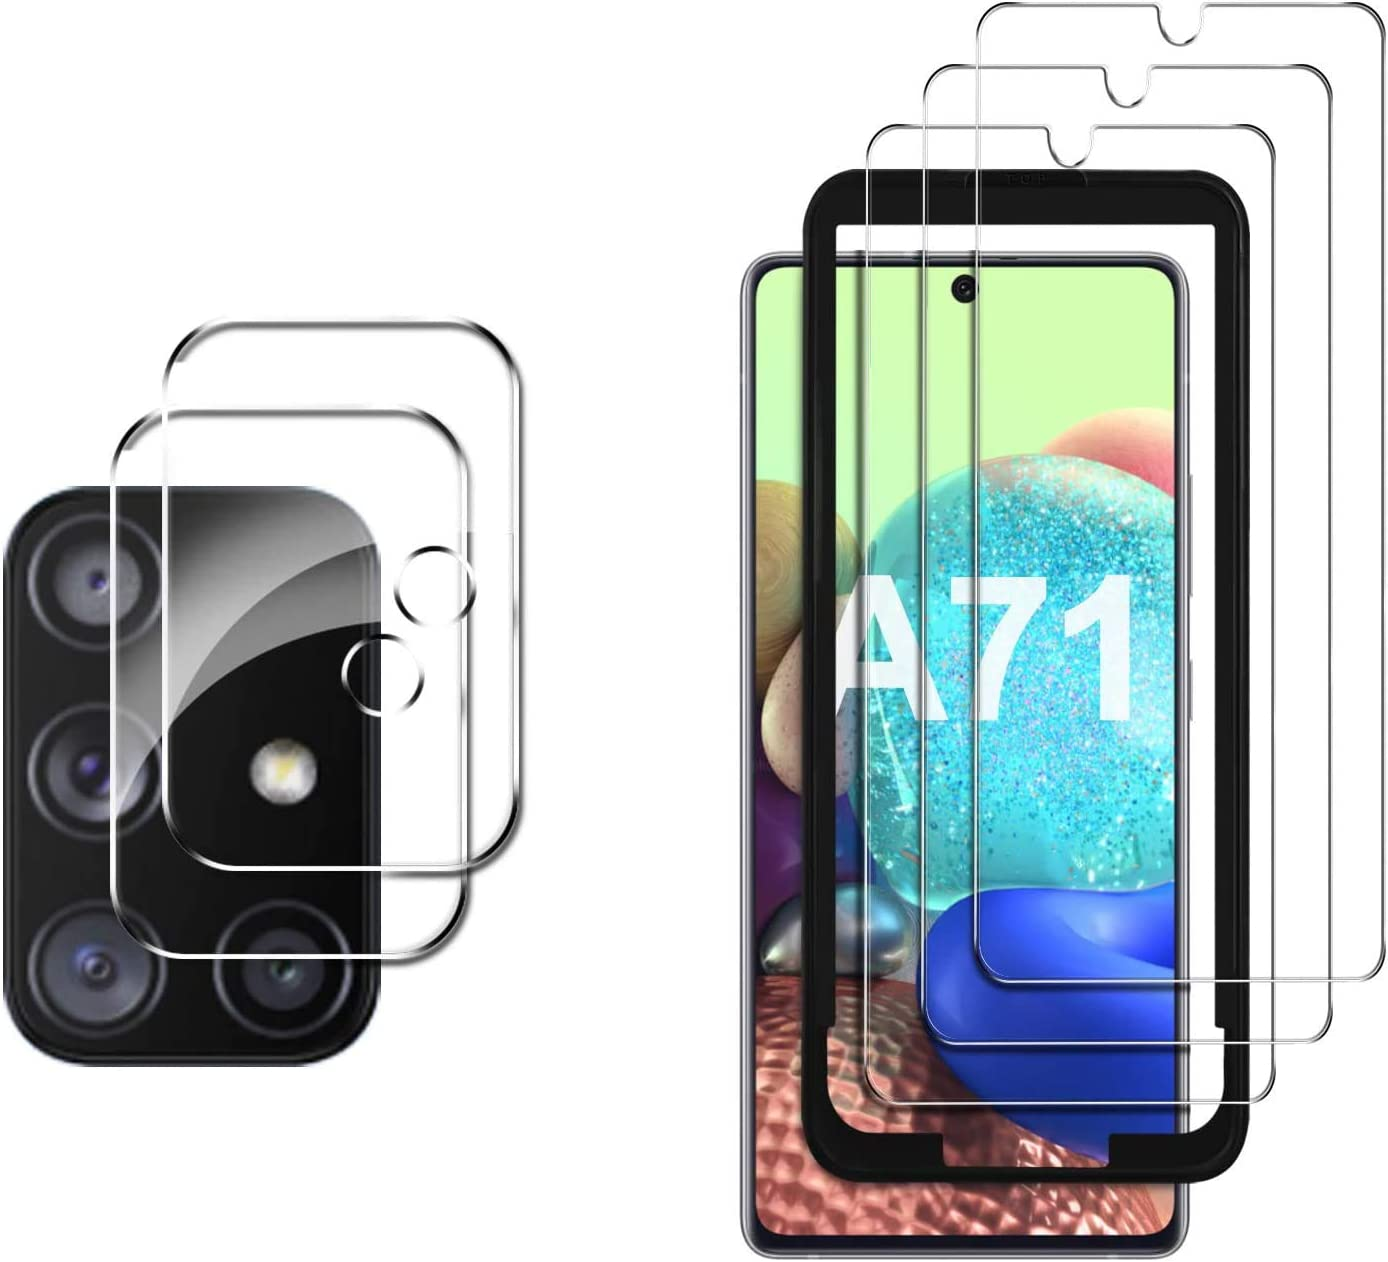 Amazon Com Gesma For Samsung Galaxy A71 Screen Protector And Camera Lens Protector Compatible 4g 5g 3 Screen Protector 2 Camera Protector 1 Tray Tempered Glass For Samsung Galaxy A71 5g 4g Phone Clear